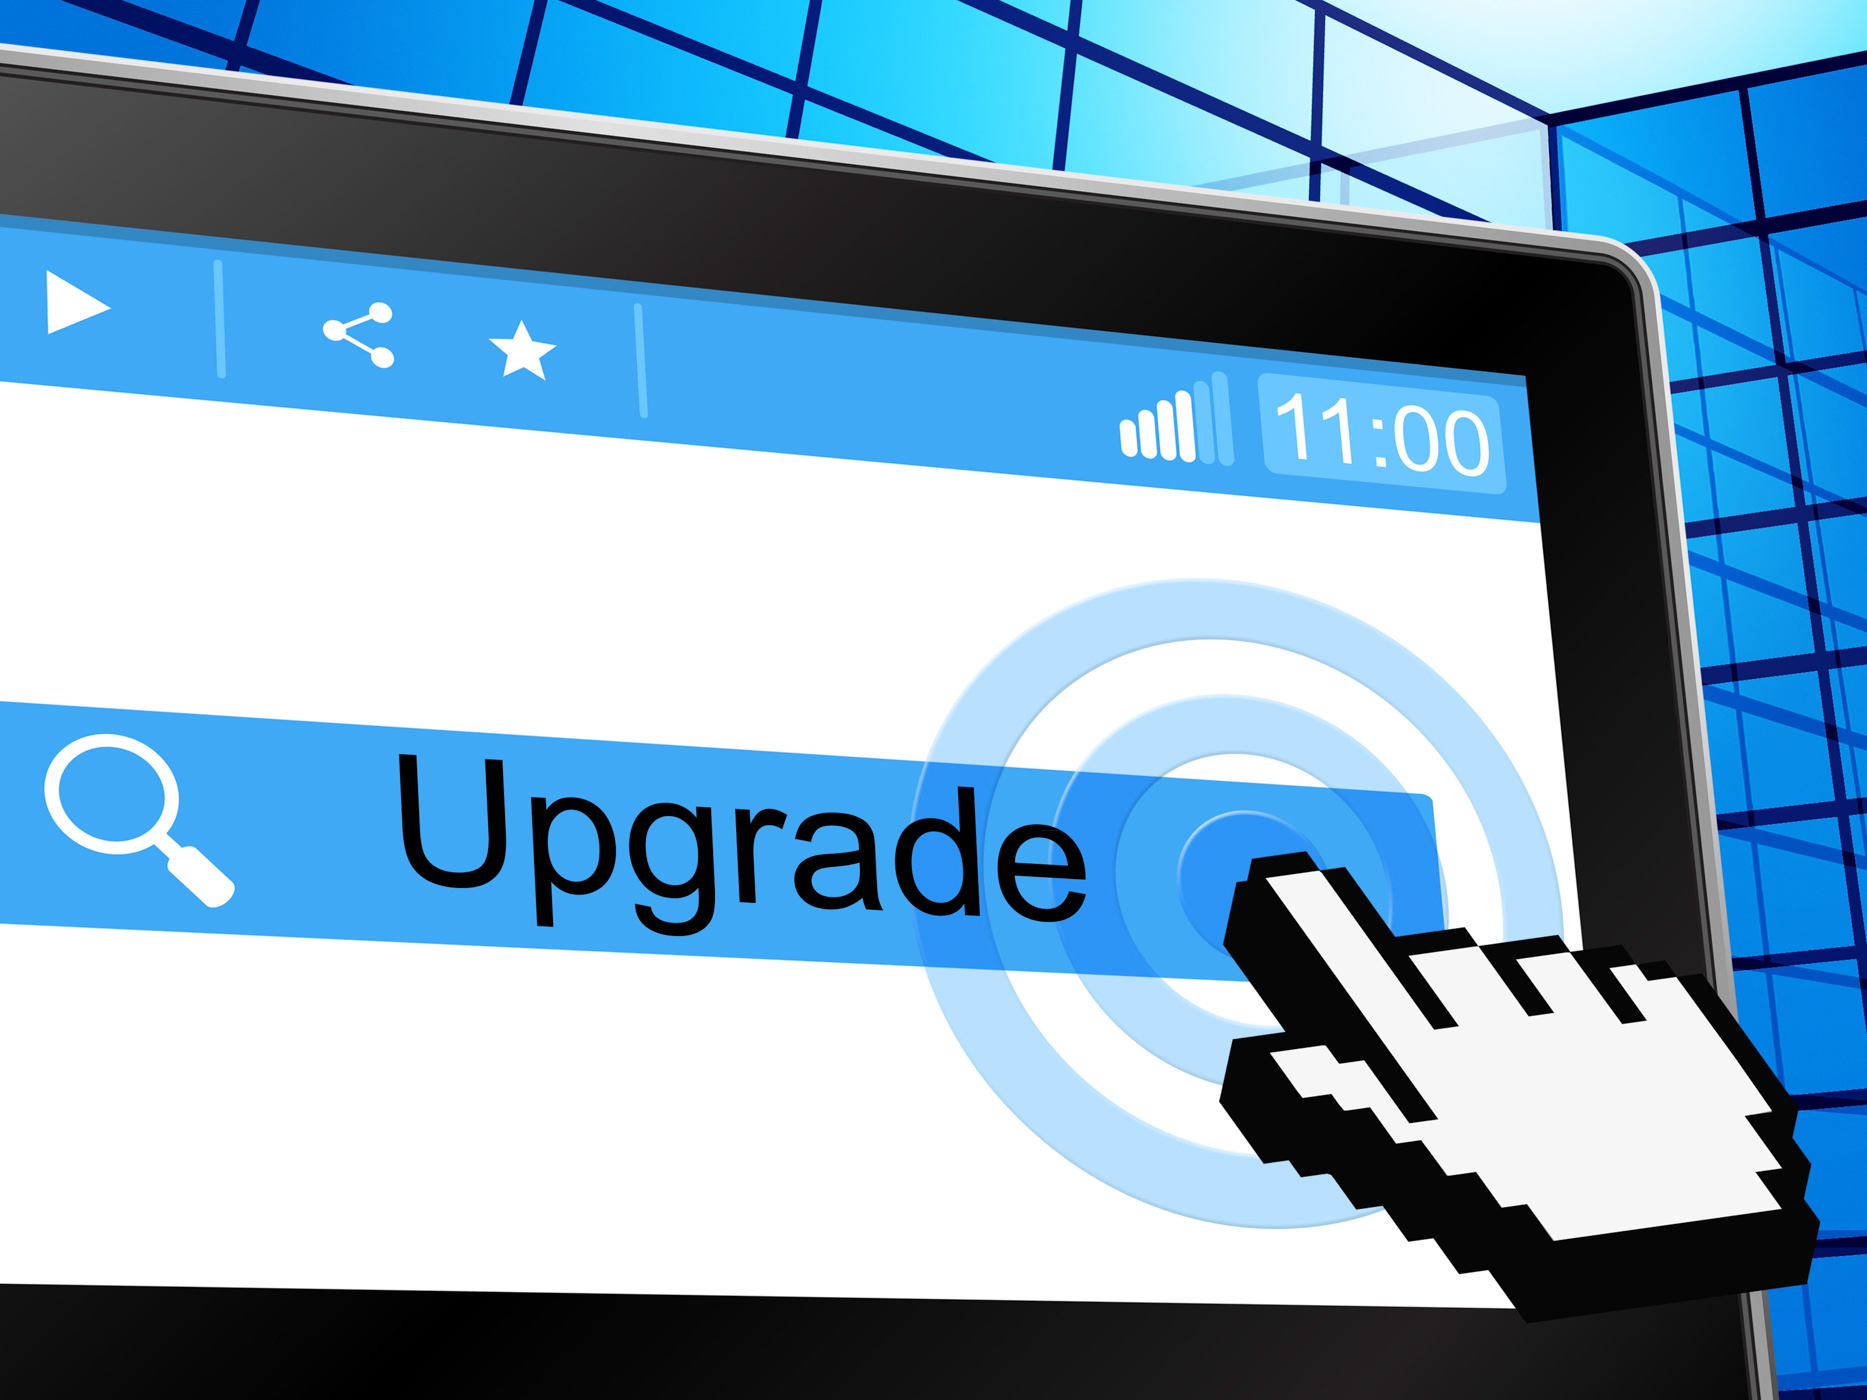 Software update stock image; the importance of keeping software updated